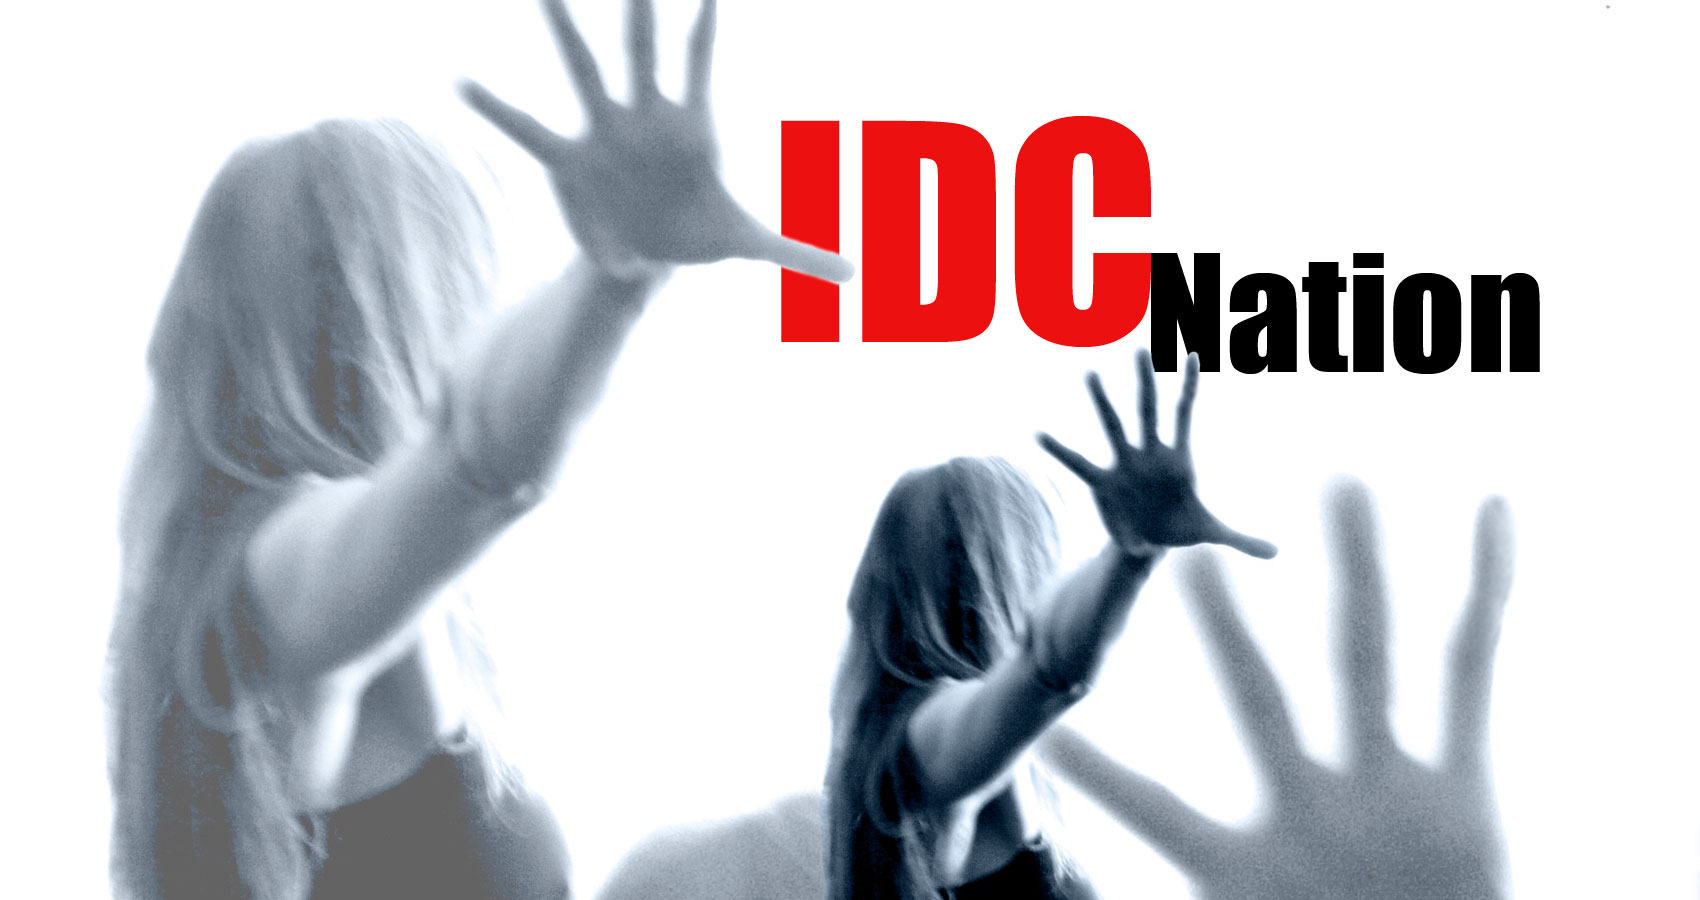 IDC Nation at Spillwords.com